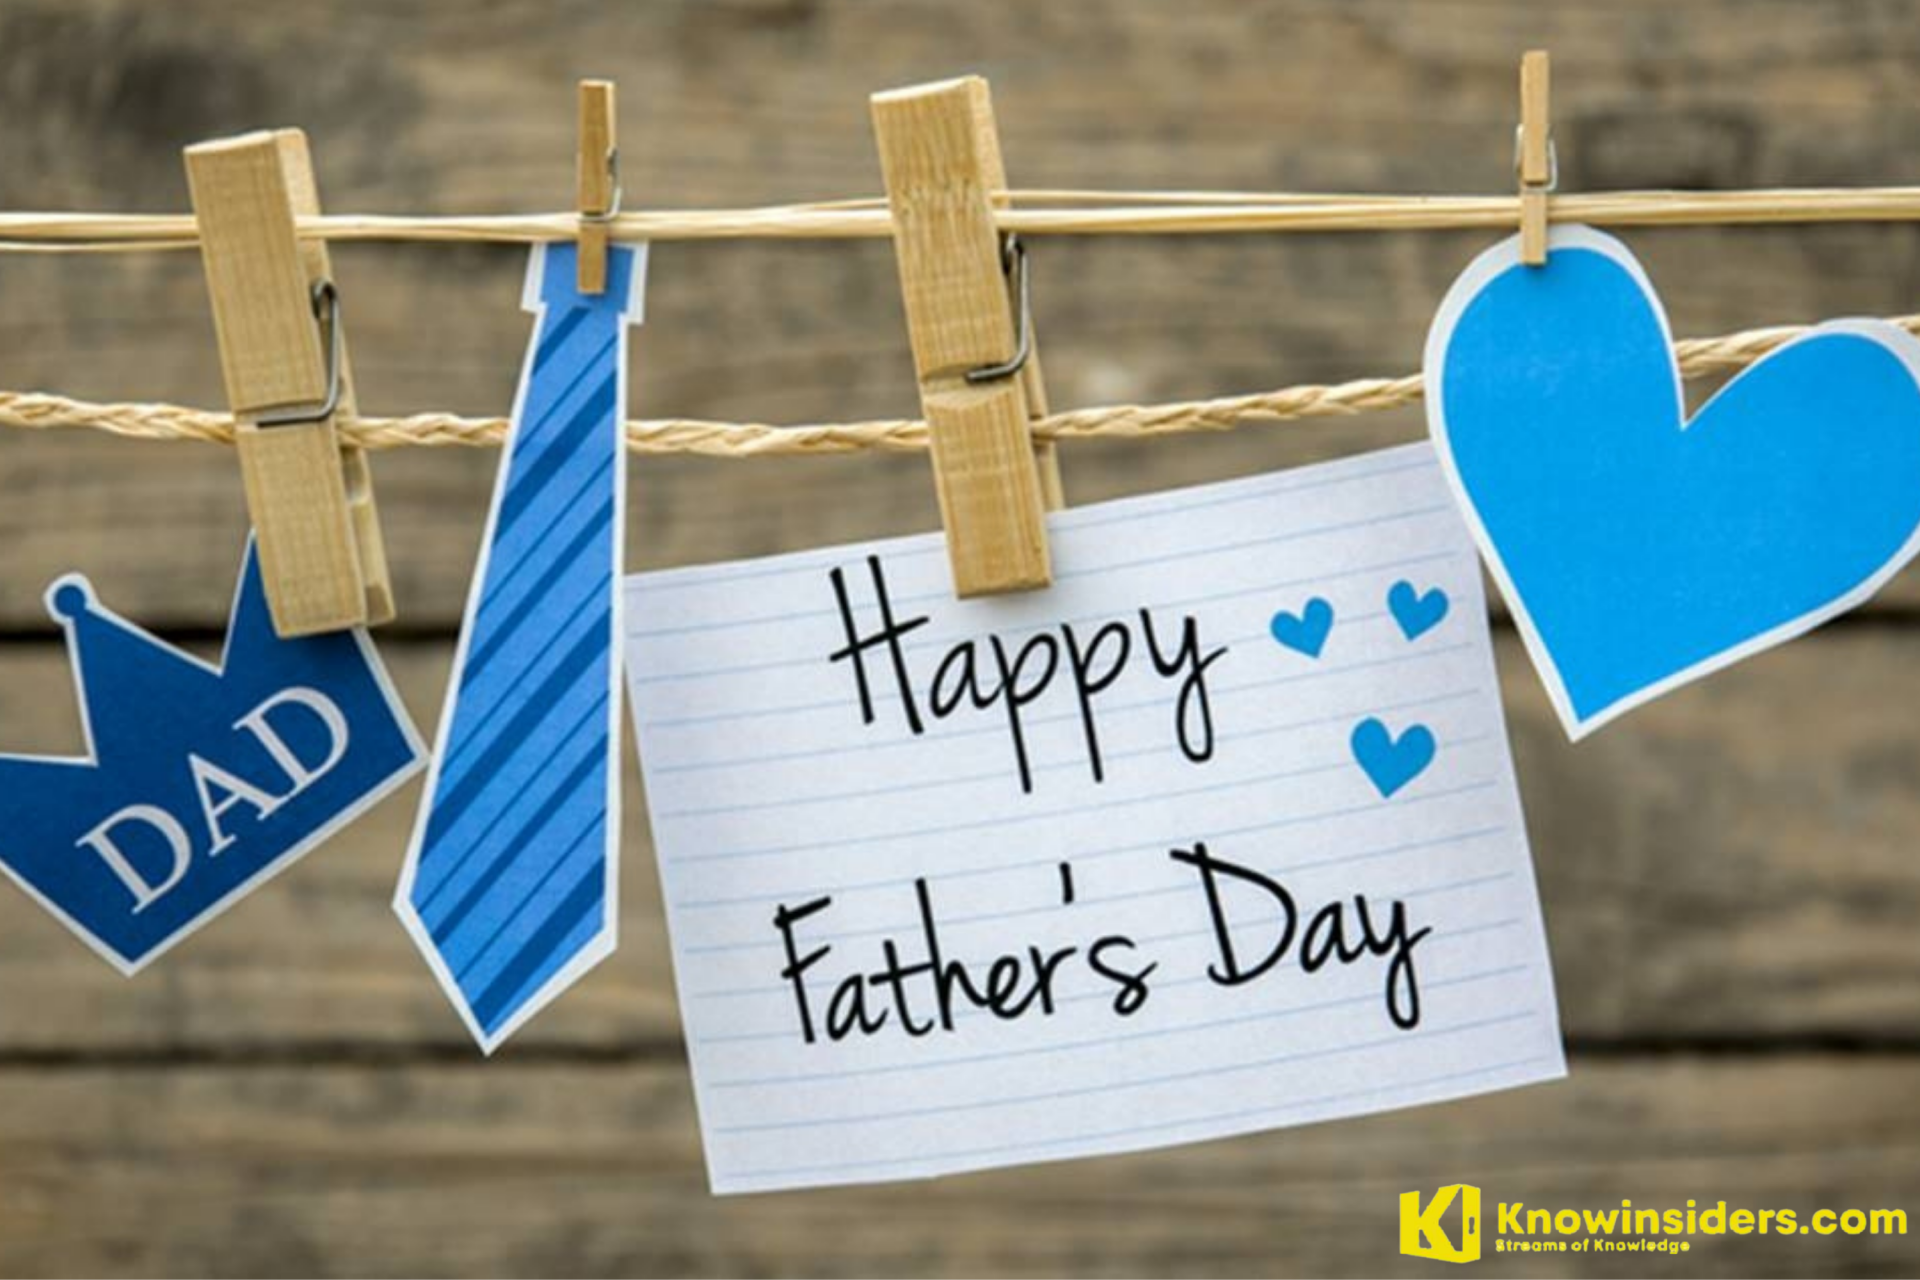 Father's Day: When, History, Meaning, How to Celebrate